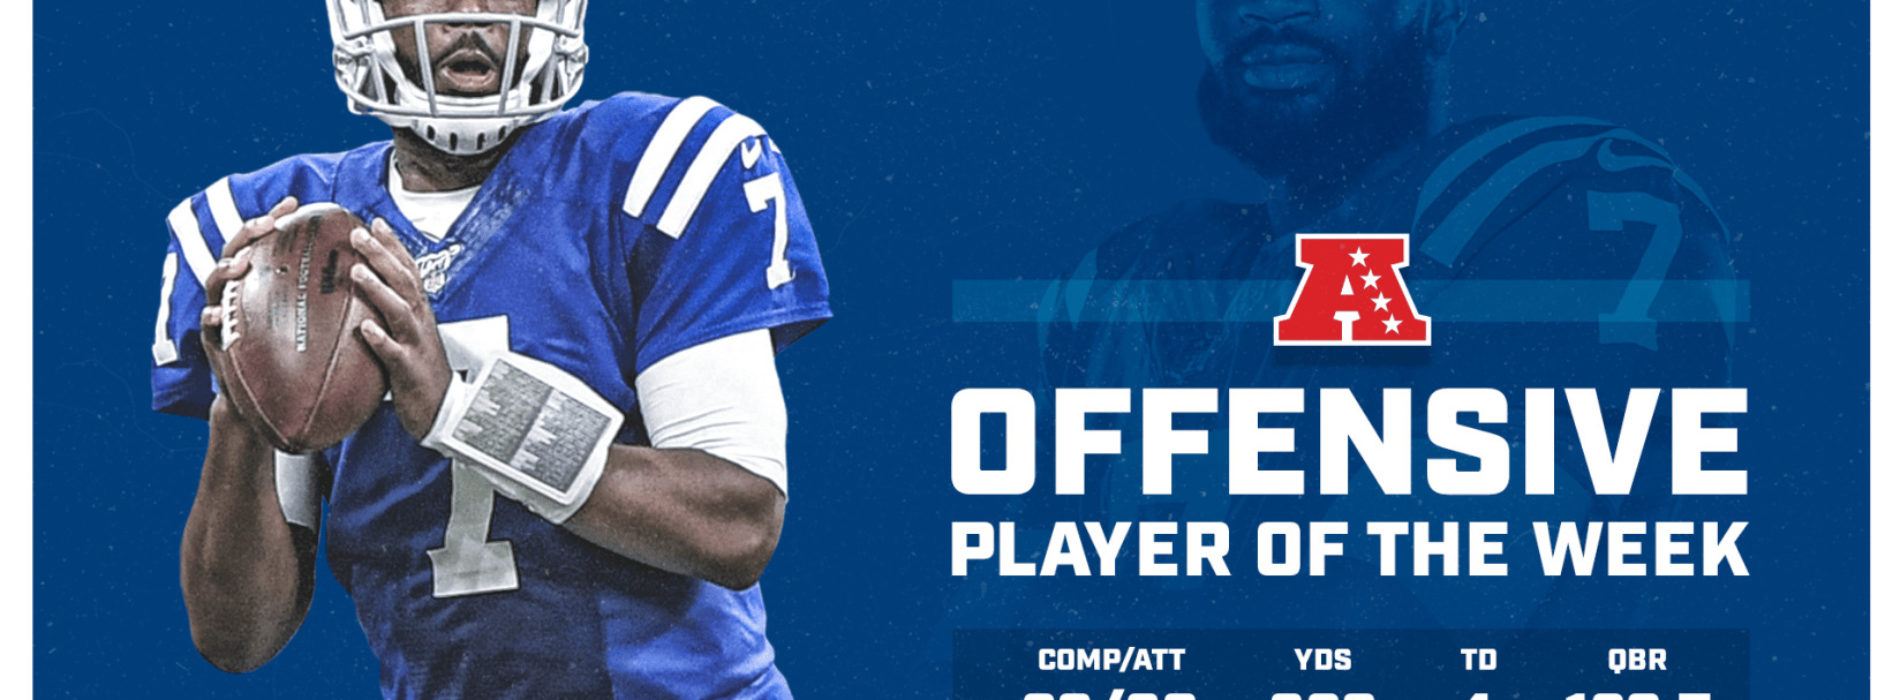 COLTS QB-JACOBY BRISSETT NAMED AFC OFFENSIVE PLAYER OF THE WEEK